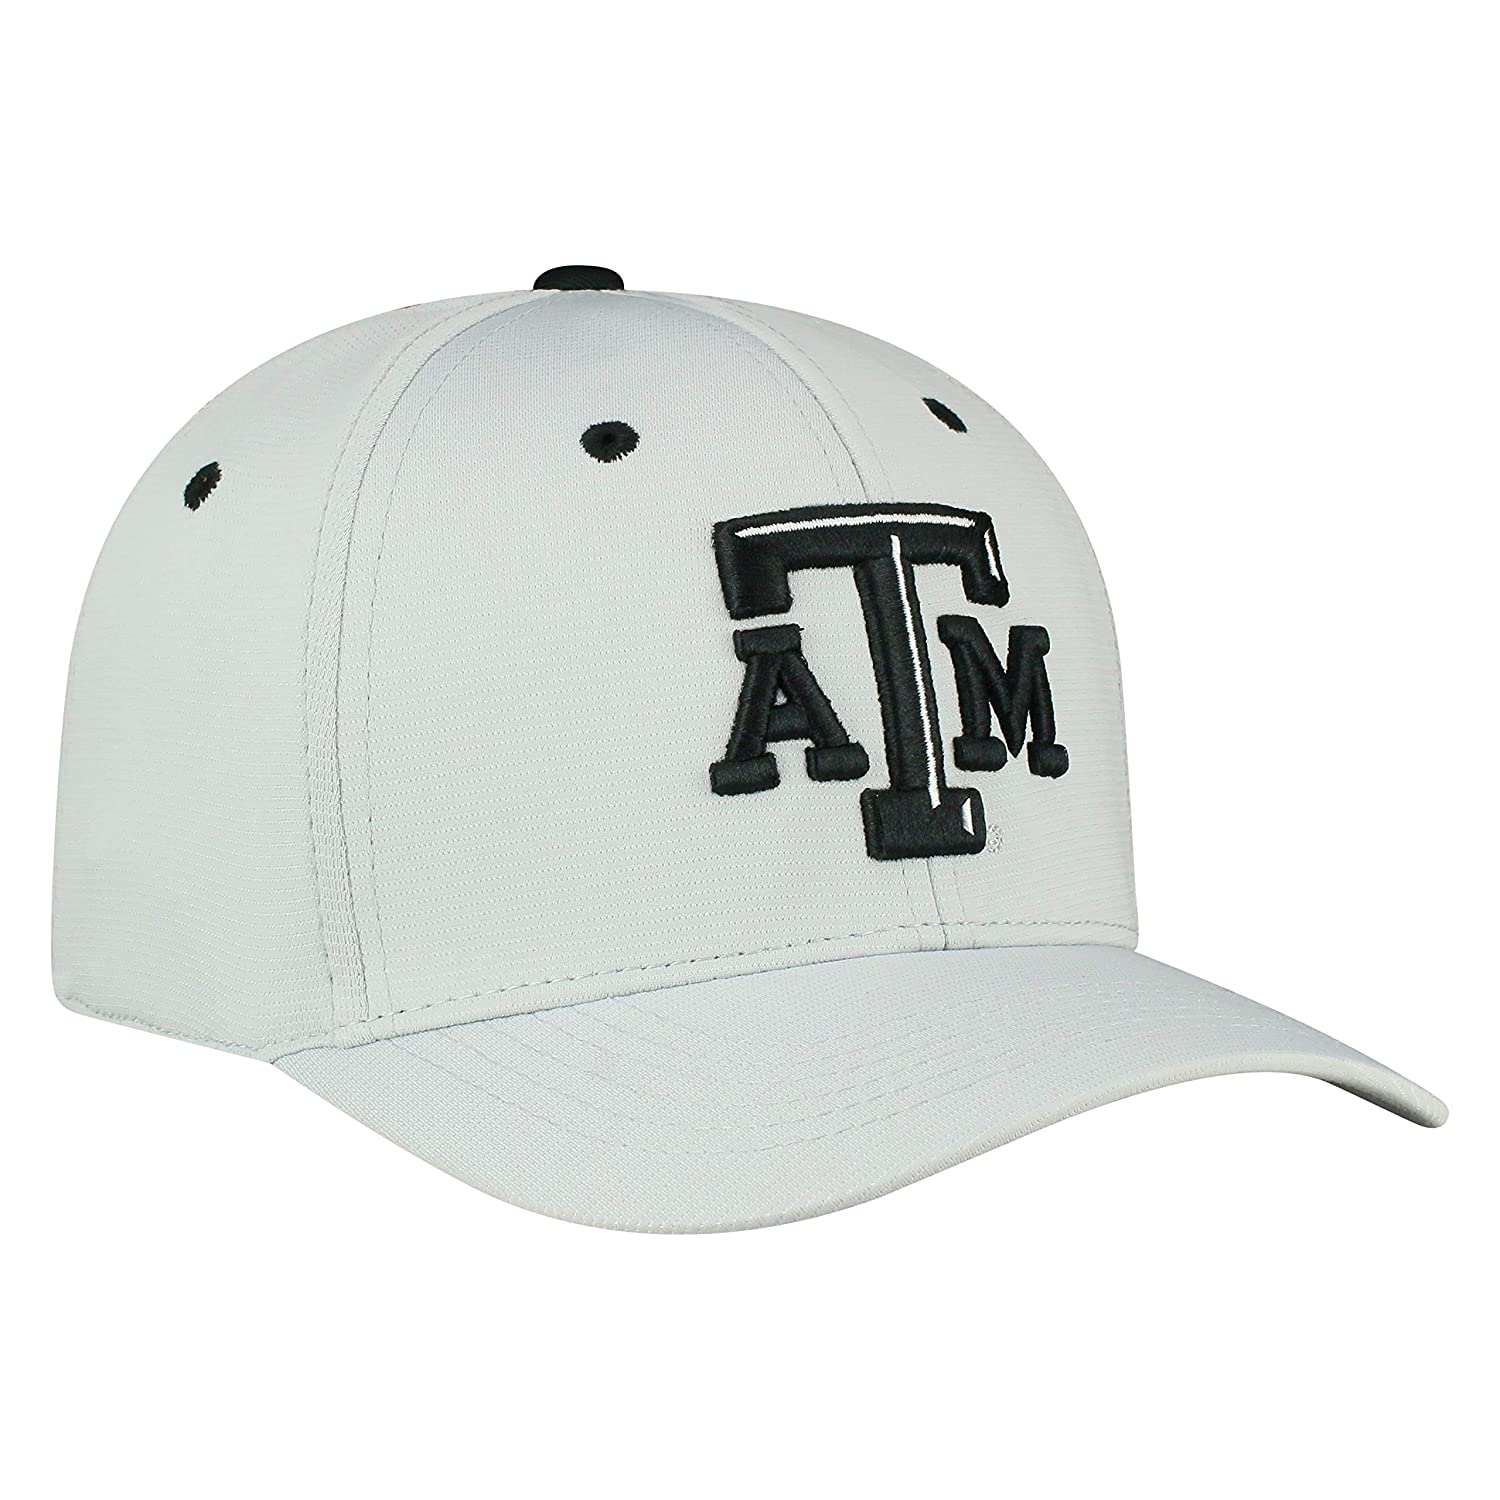 low priced 6c907 d3cce Top of the World Texas A M Aggies Official NCAA One Fit Hypower Hat Cap  435718 Sports   Outdoors